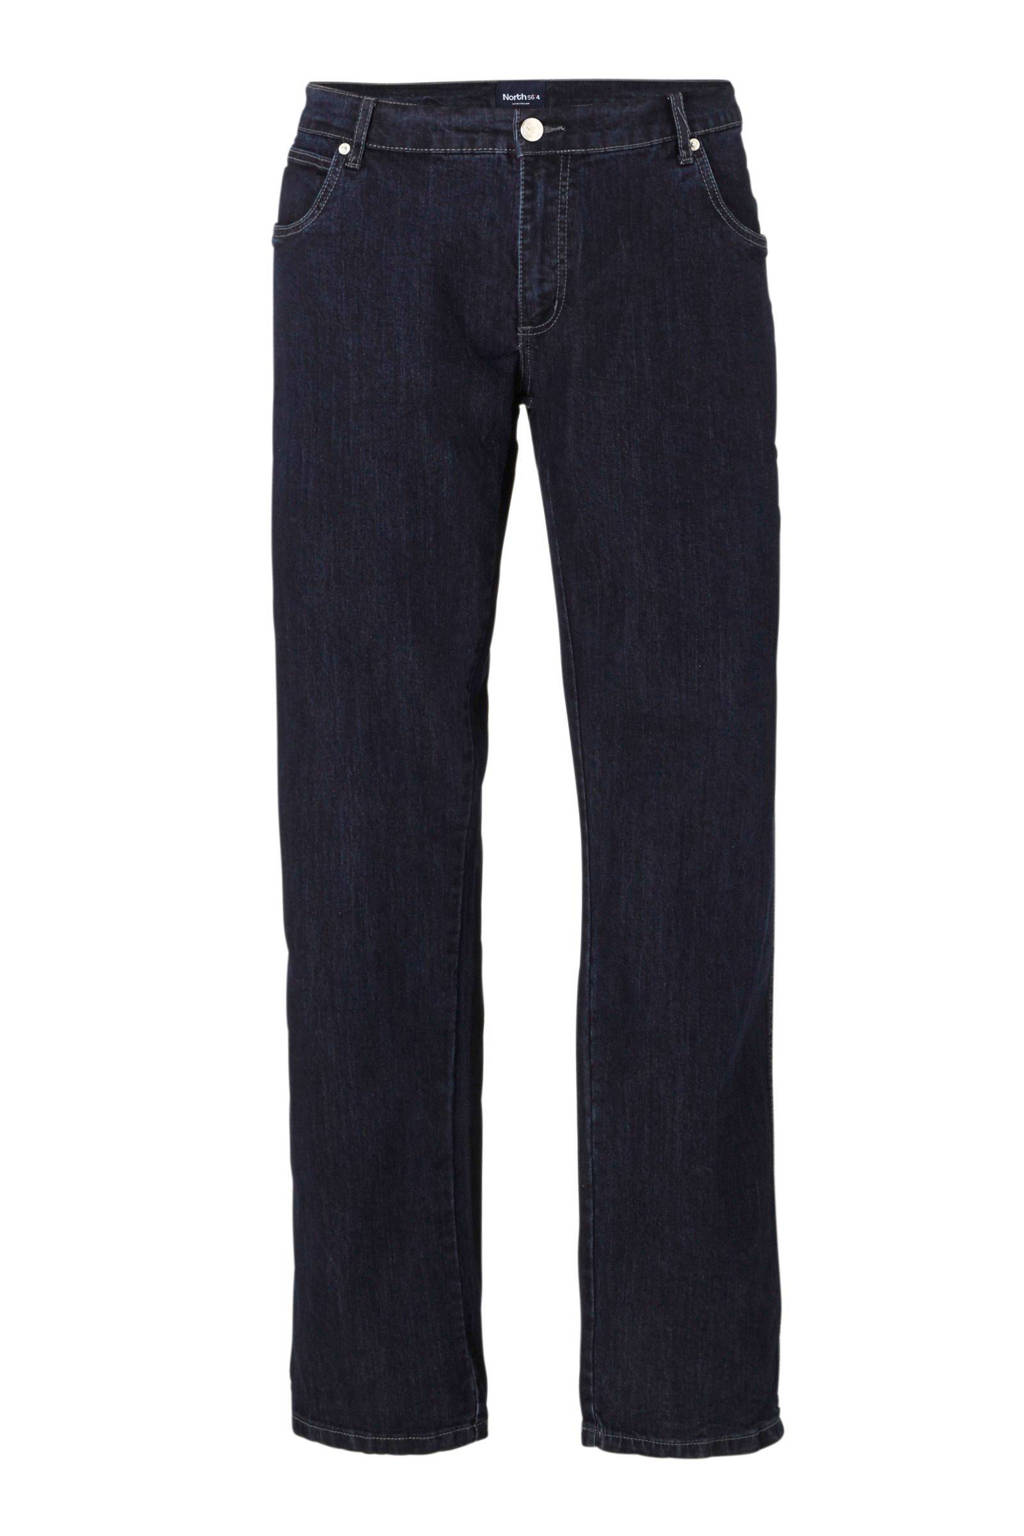 North 56°4 +size loose fit jeans, Blue stonewashed